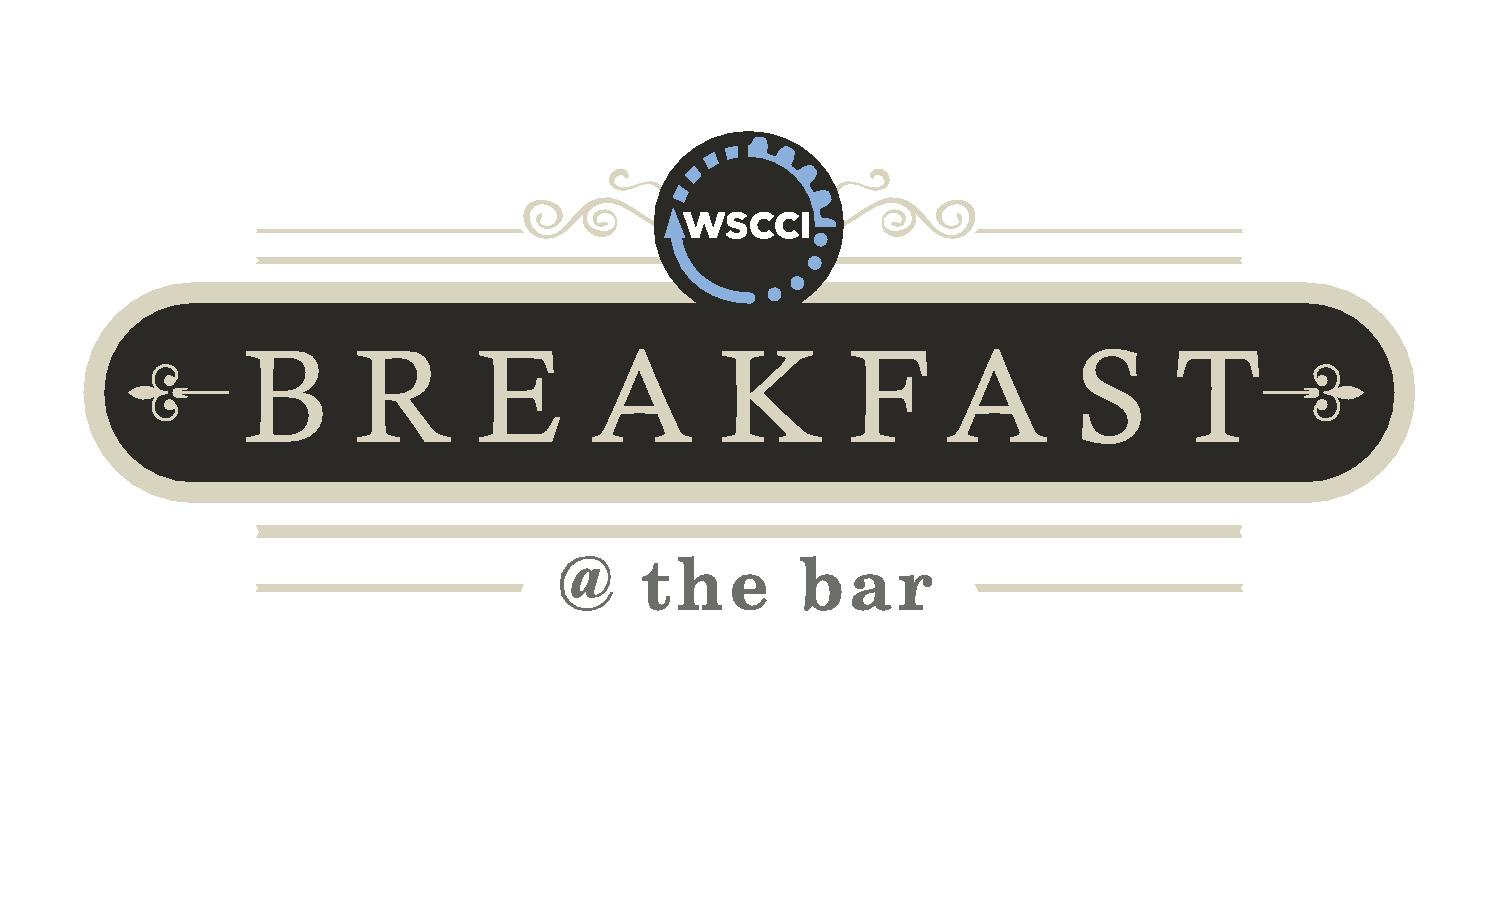 Breakfast_at_the_bar_logo_new_concept-page-001.jpg